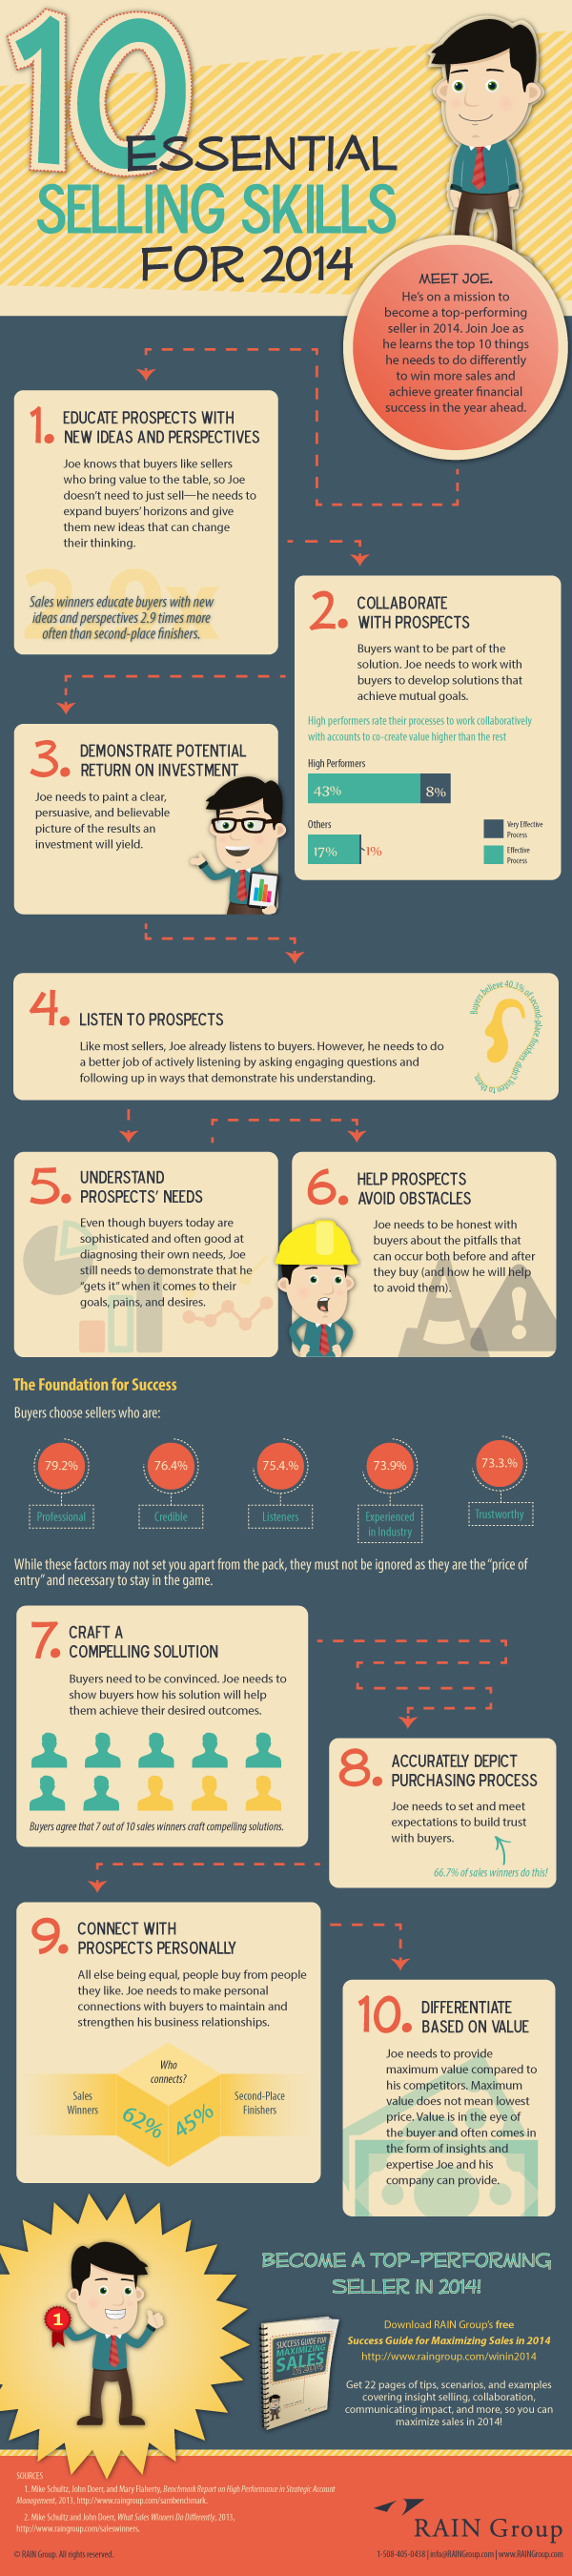 10-Essential-Selling-Skills-for-2014-600px